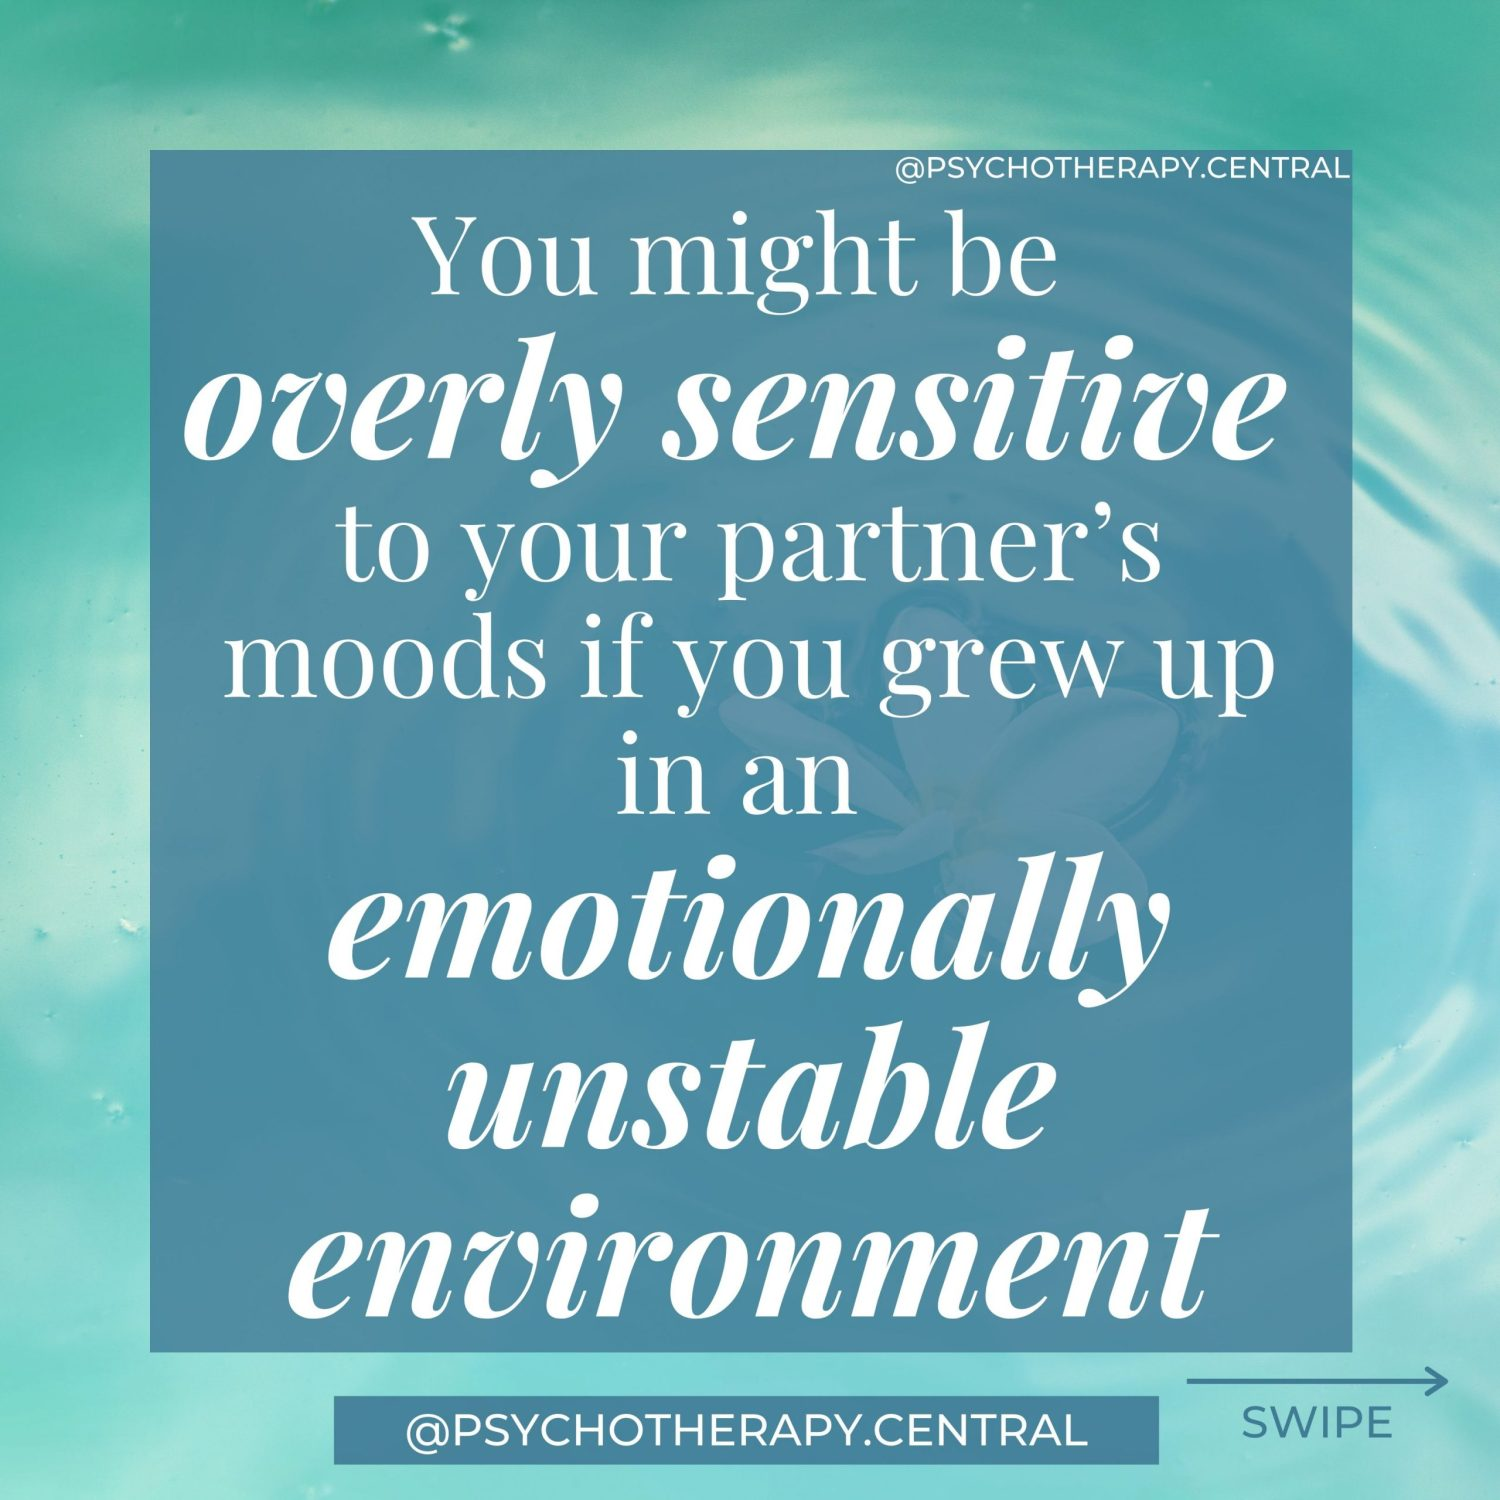 You might be overly sensitive to your partner's moods if you grew up in an emotionally unstable environment.